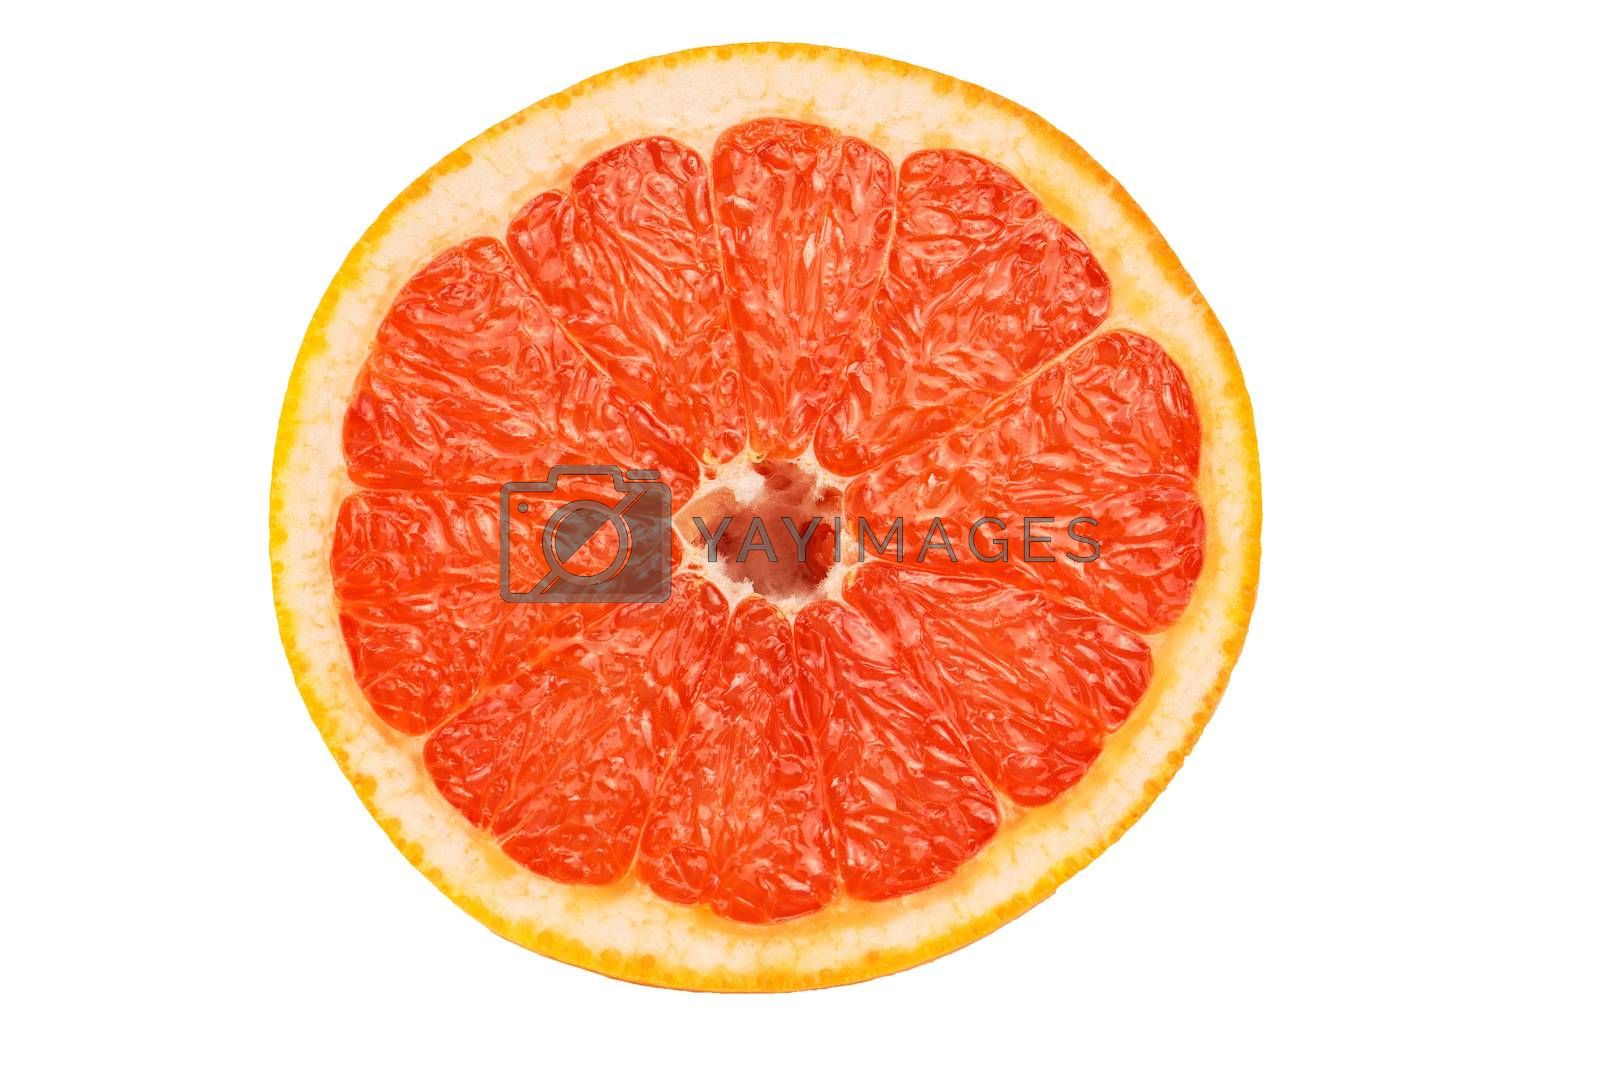 Slice a fresh juicy red round grapefruit